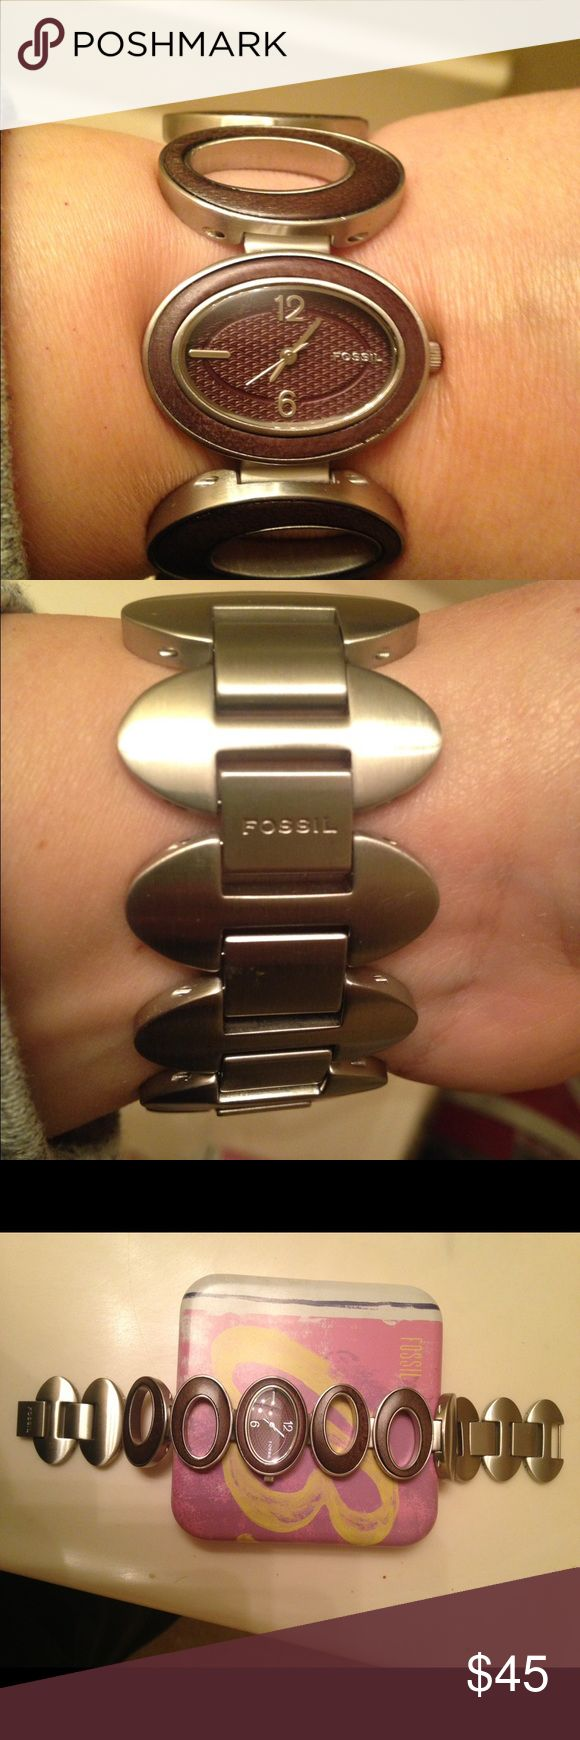 Ladies watch Brand new never used but needs a battery Fossil Accessories Watches